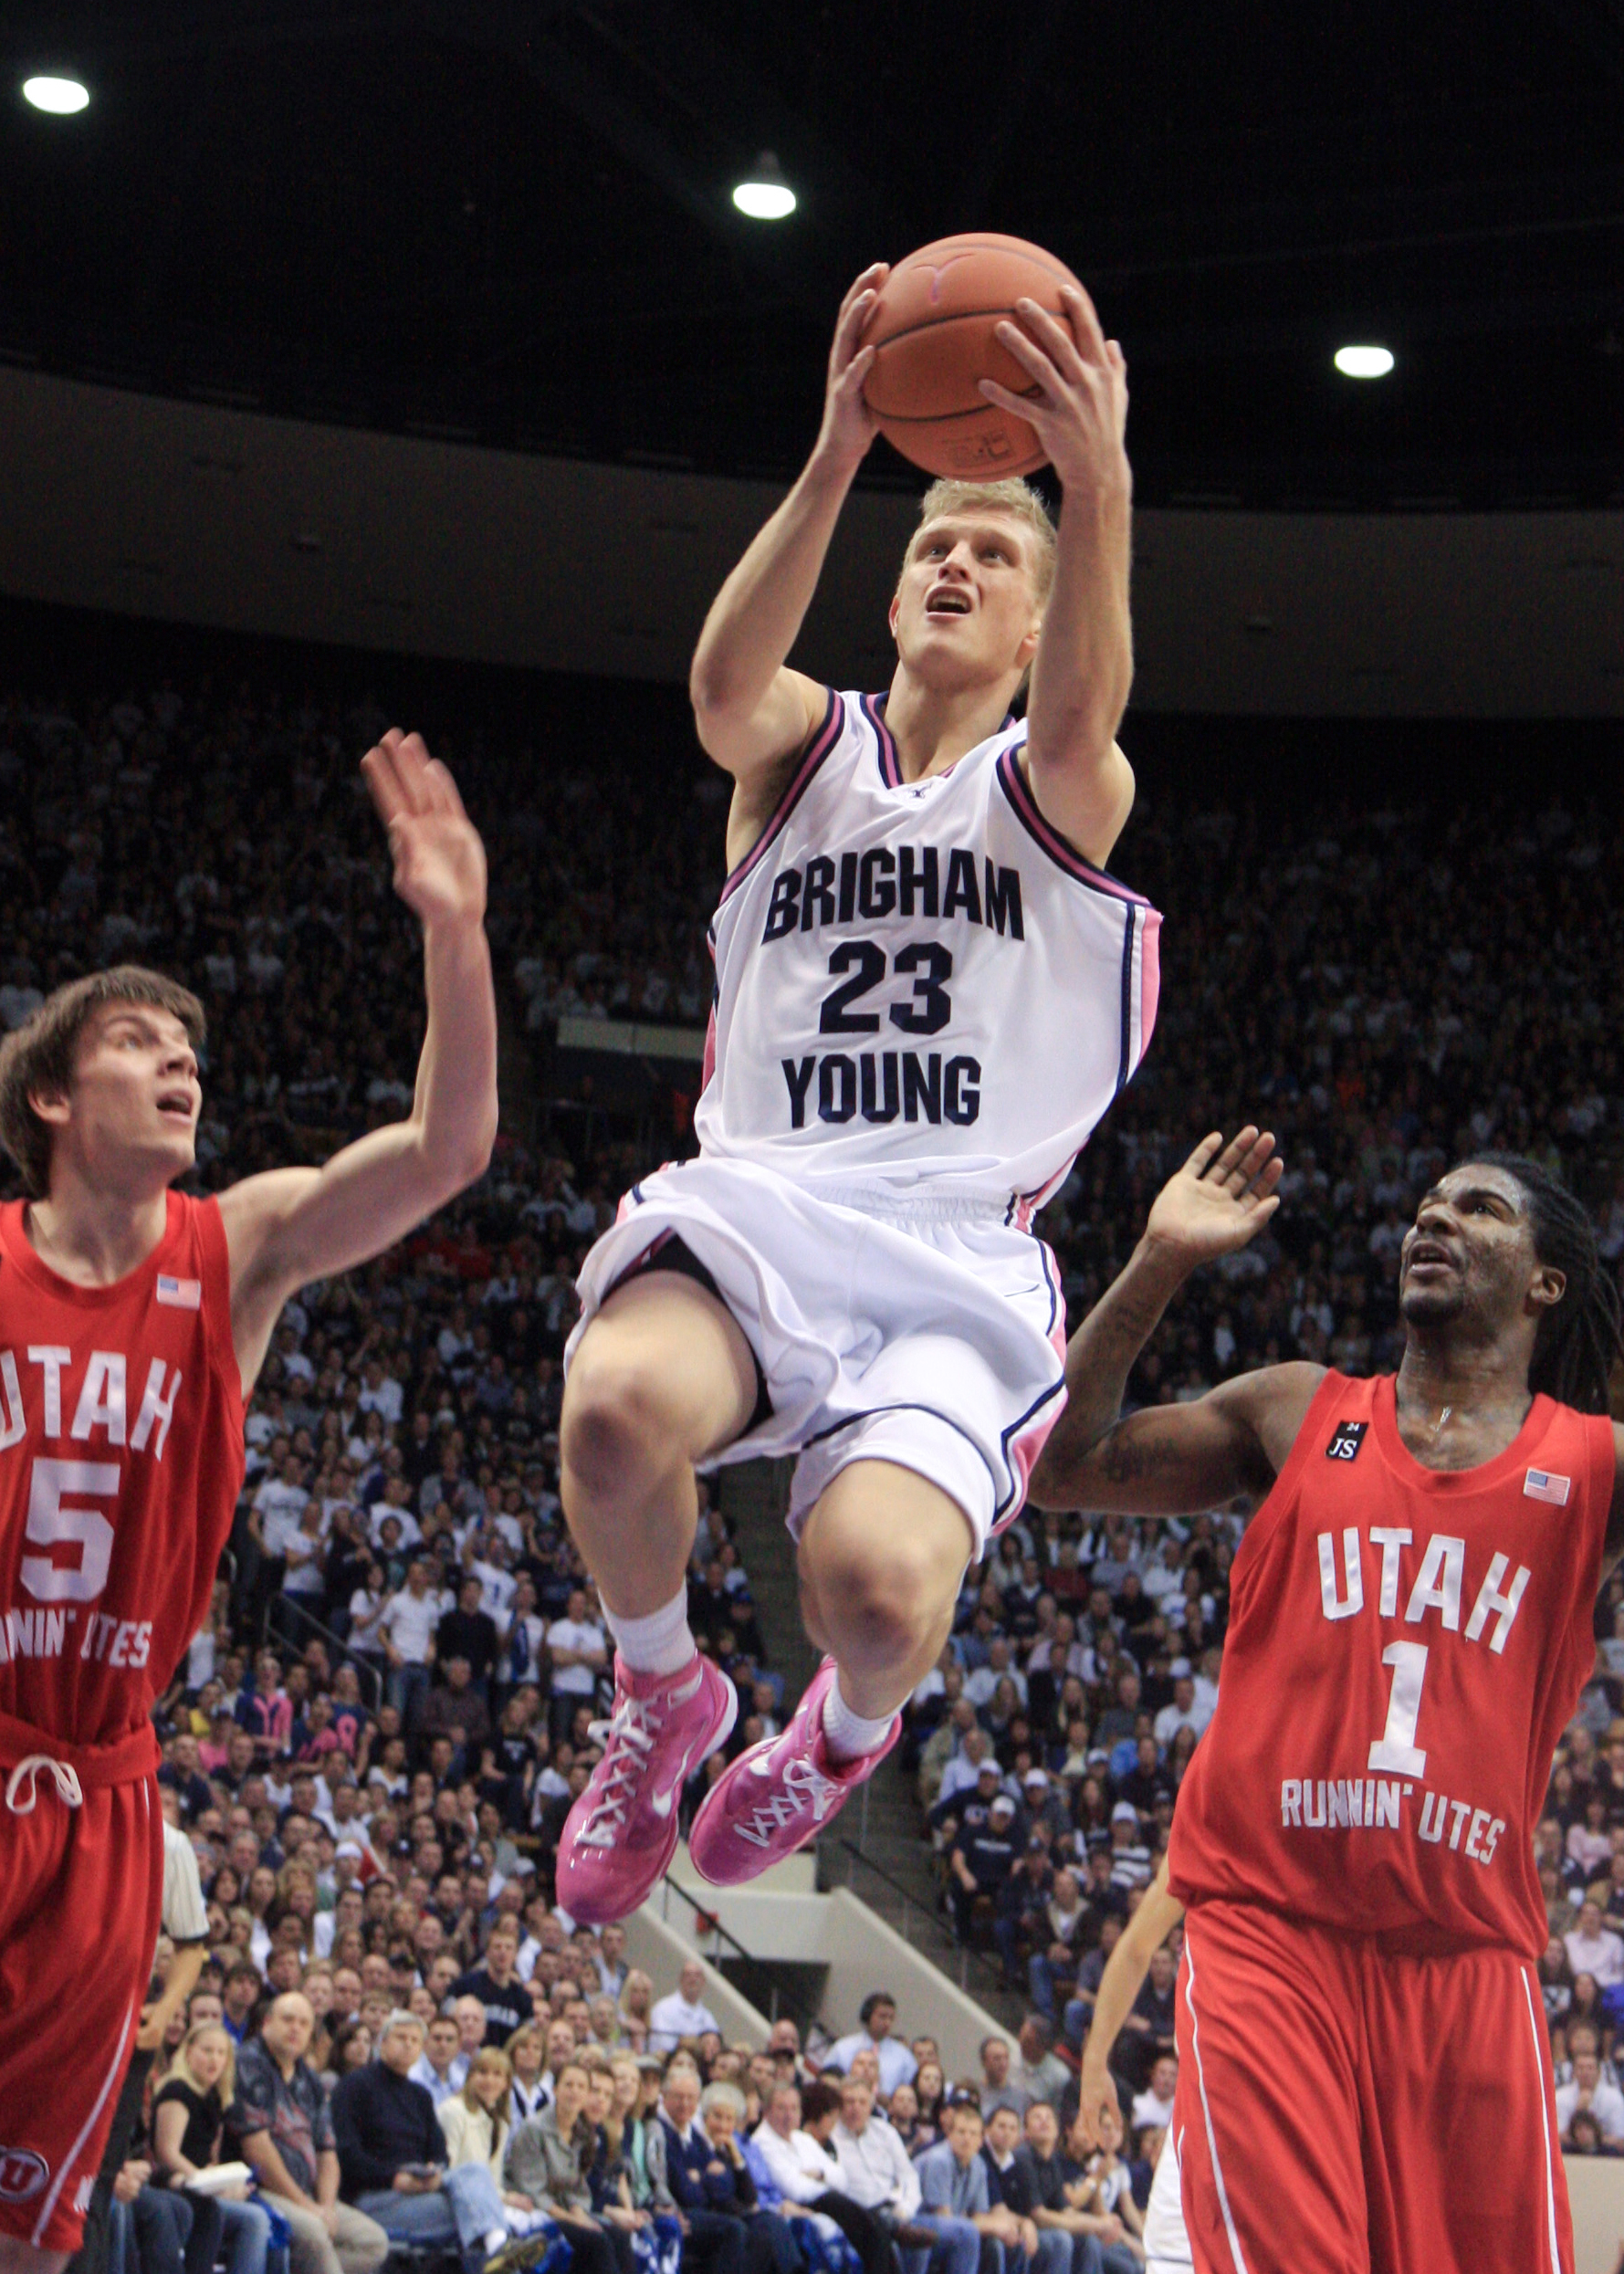 Tyler Haws weaves his way through the Utah defense to score a layup during last year's game. Photo by Natali Wyson.